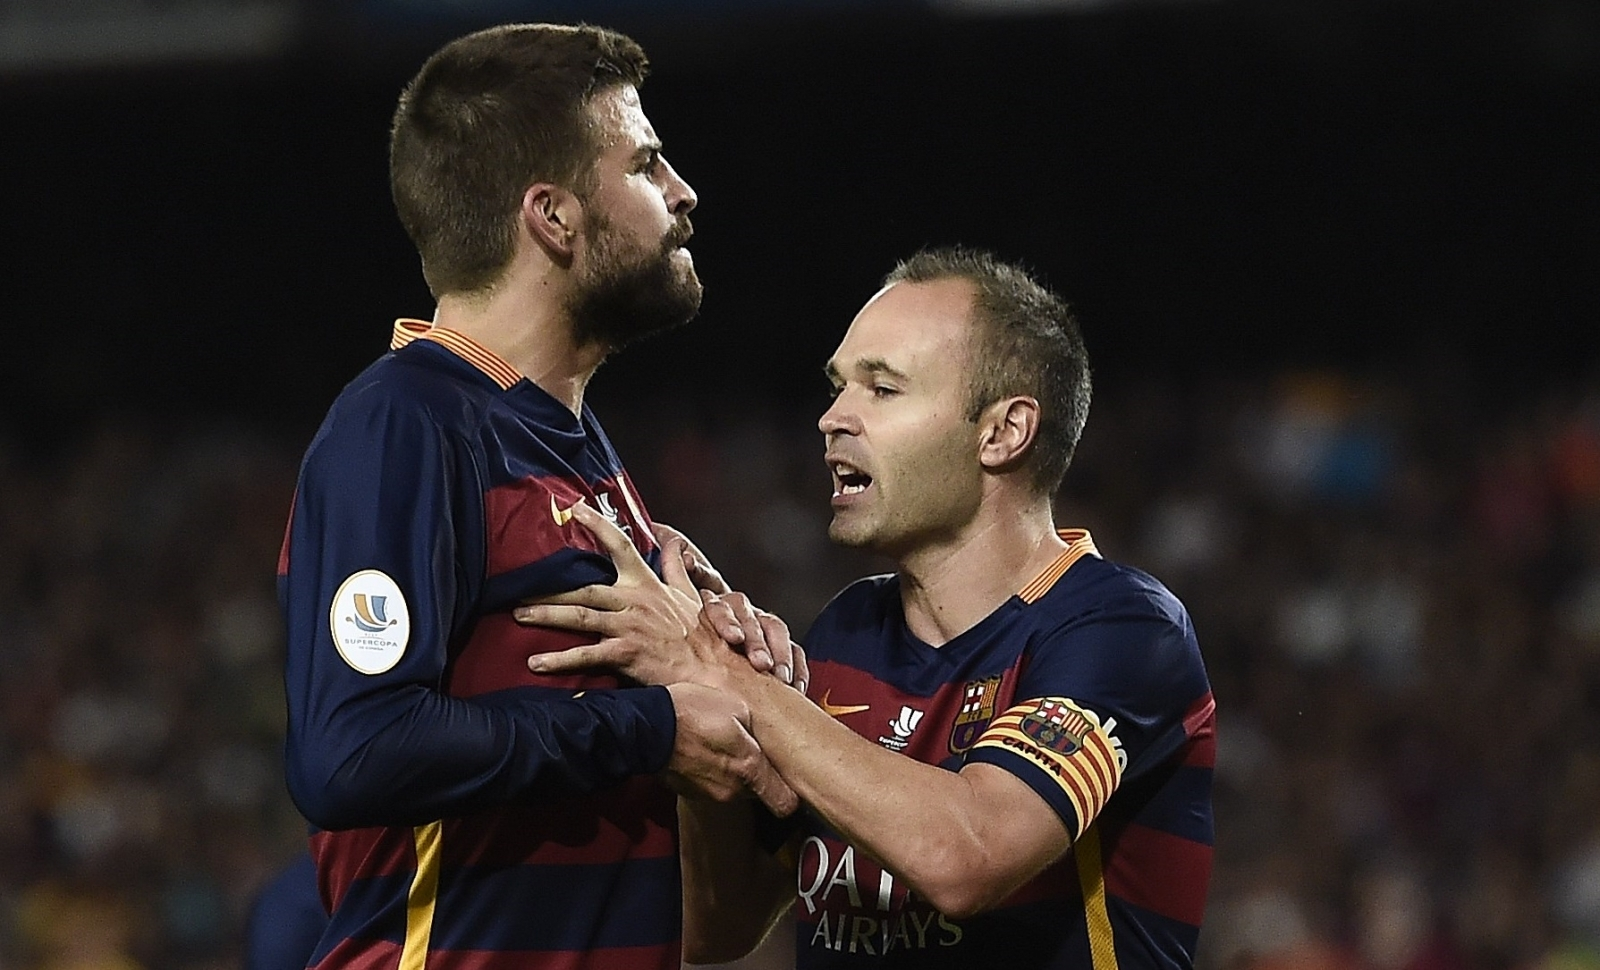 Gerard Pique and Andres Iniesta